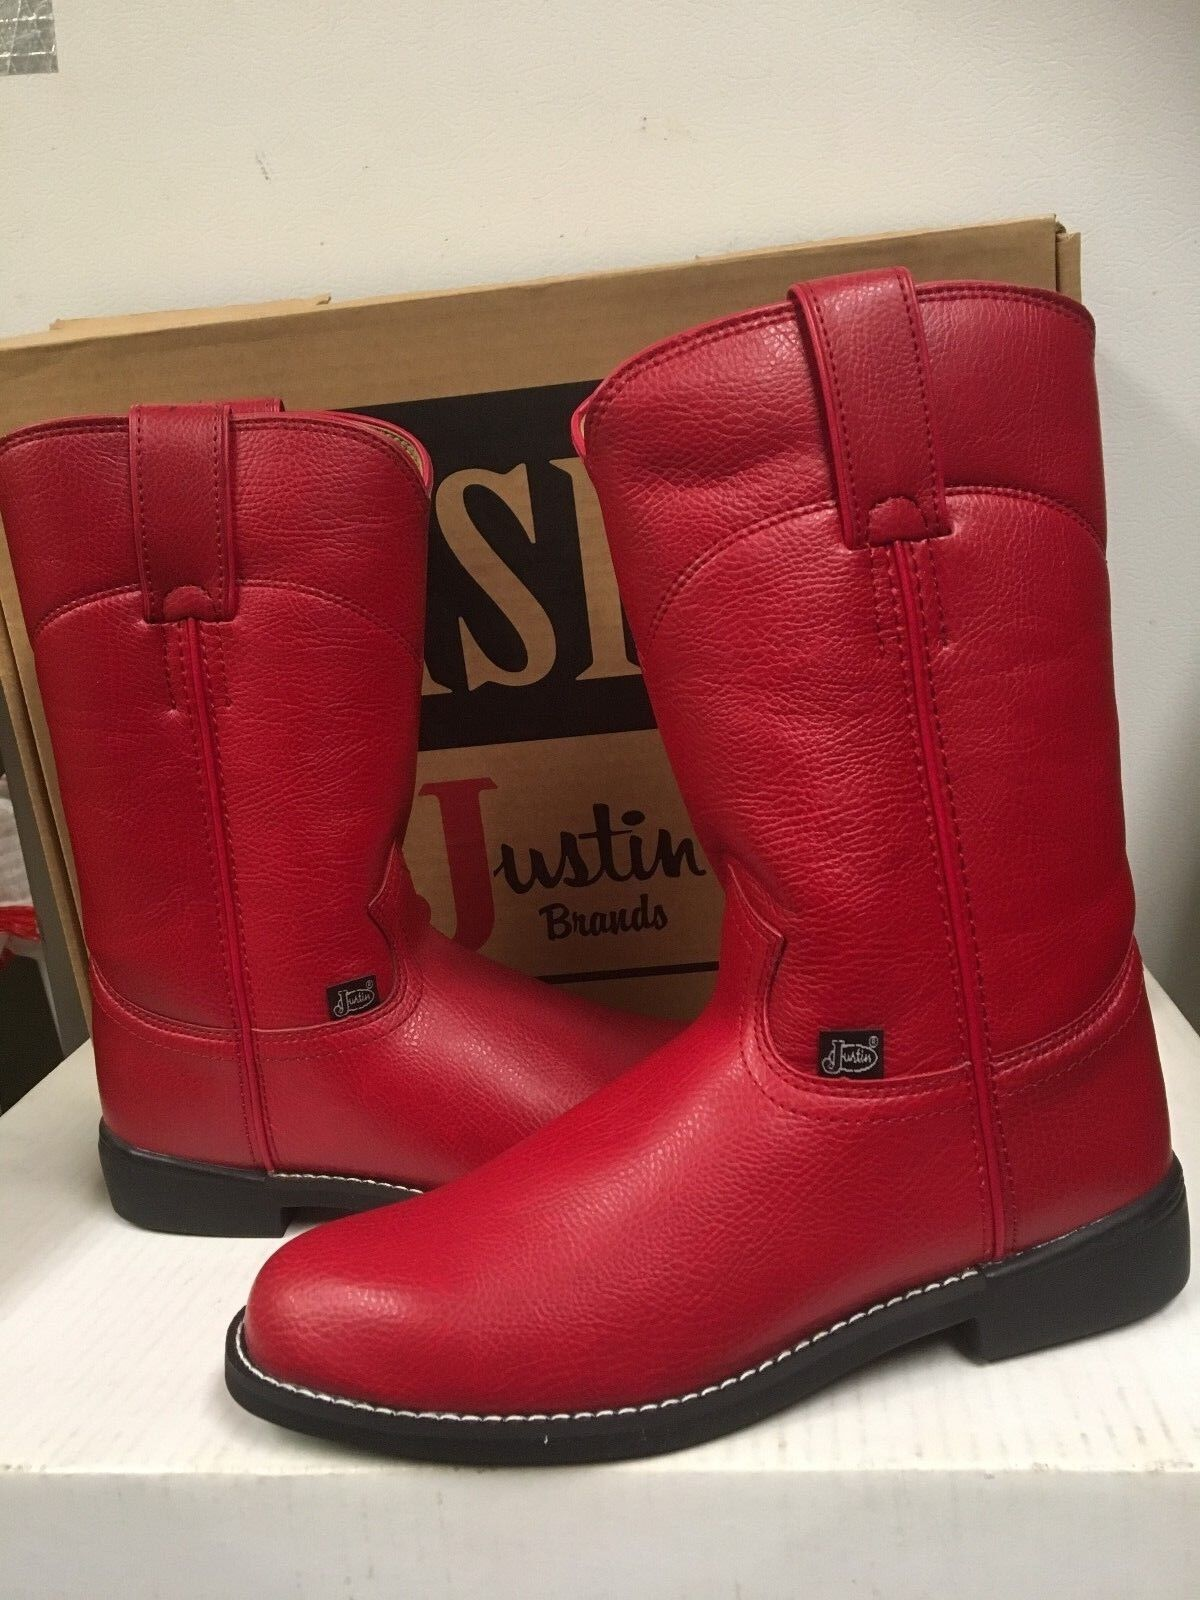 Justin Basics Women's Western Roper Leather Boots L3007 Red Size 5 B NEW